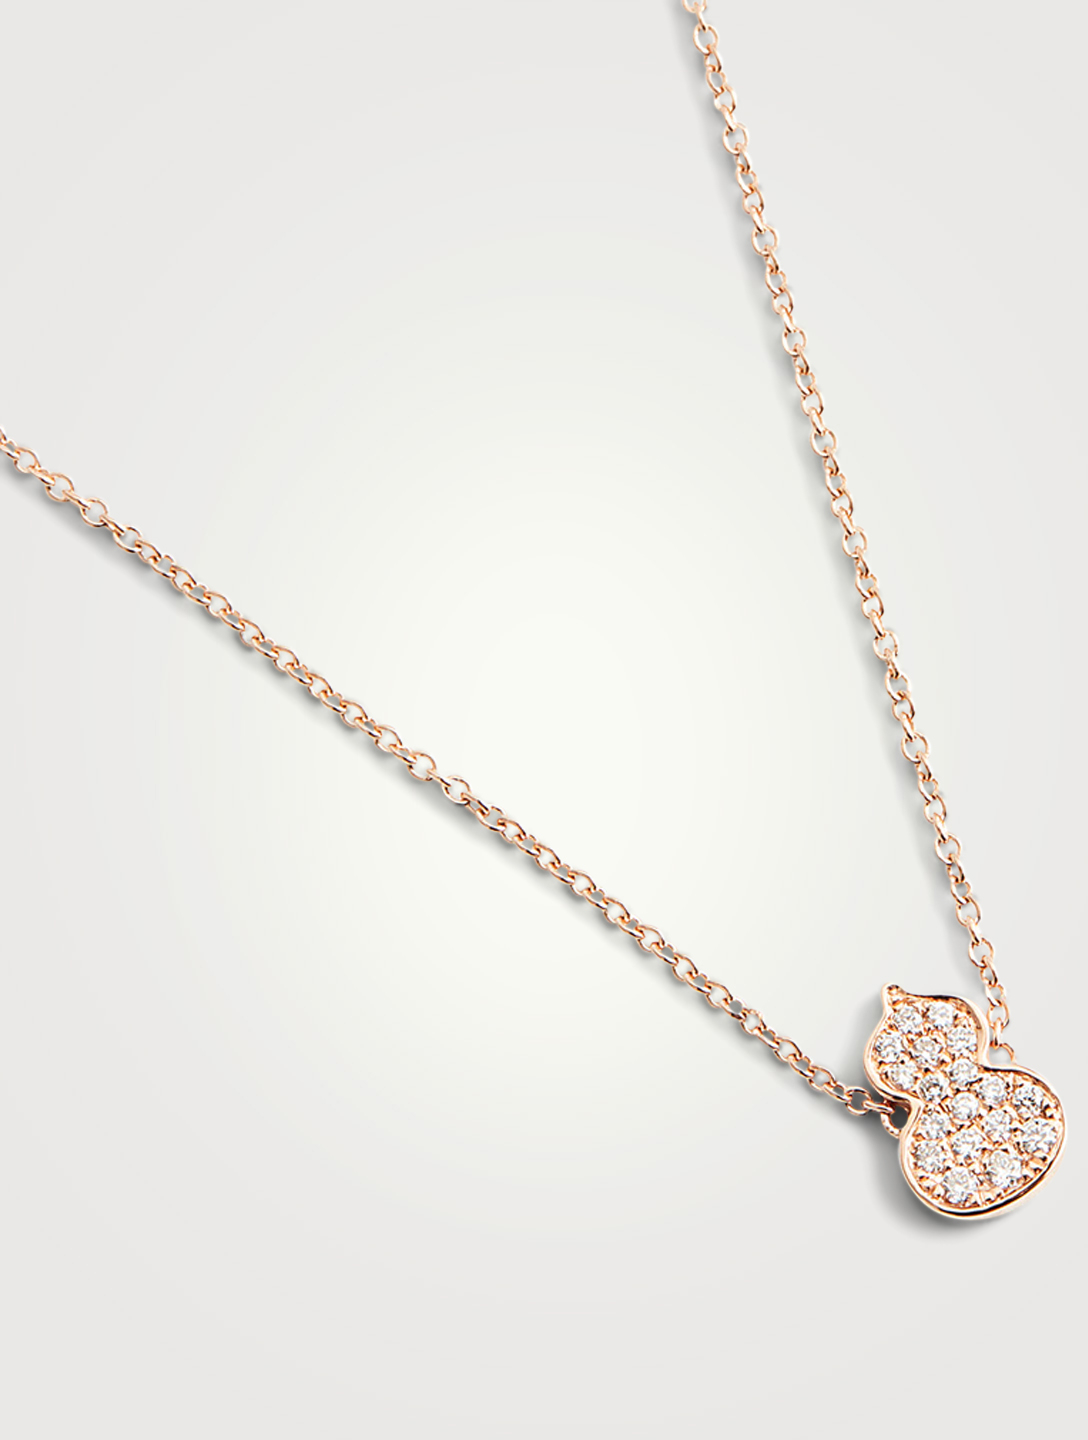 QEELIN Petite Wulu 18K Rose Gold Necklace With Diamonds Women's Metallic